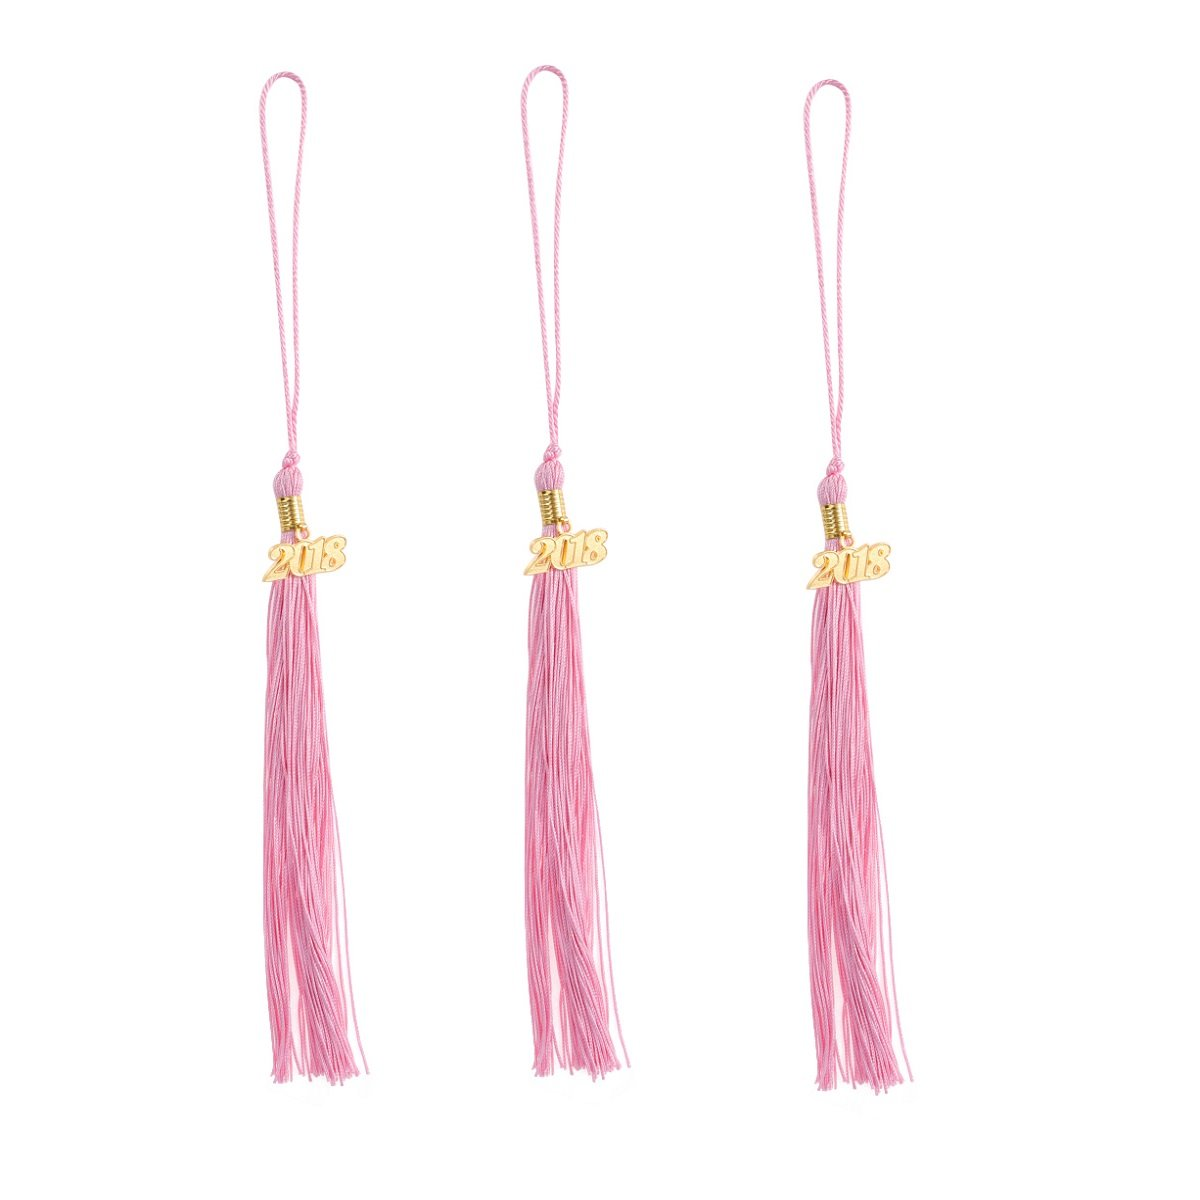 Buy JANOU 2018 Graduation Gown Tassels Accessory for Graduation ...